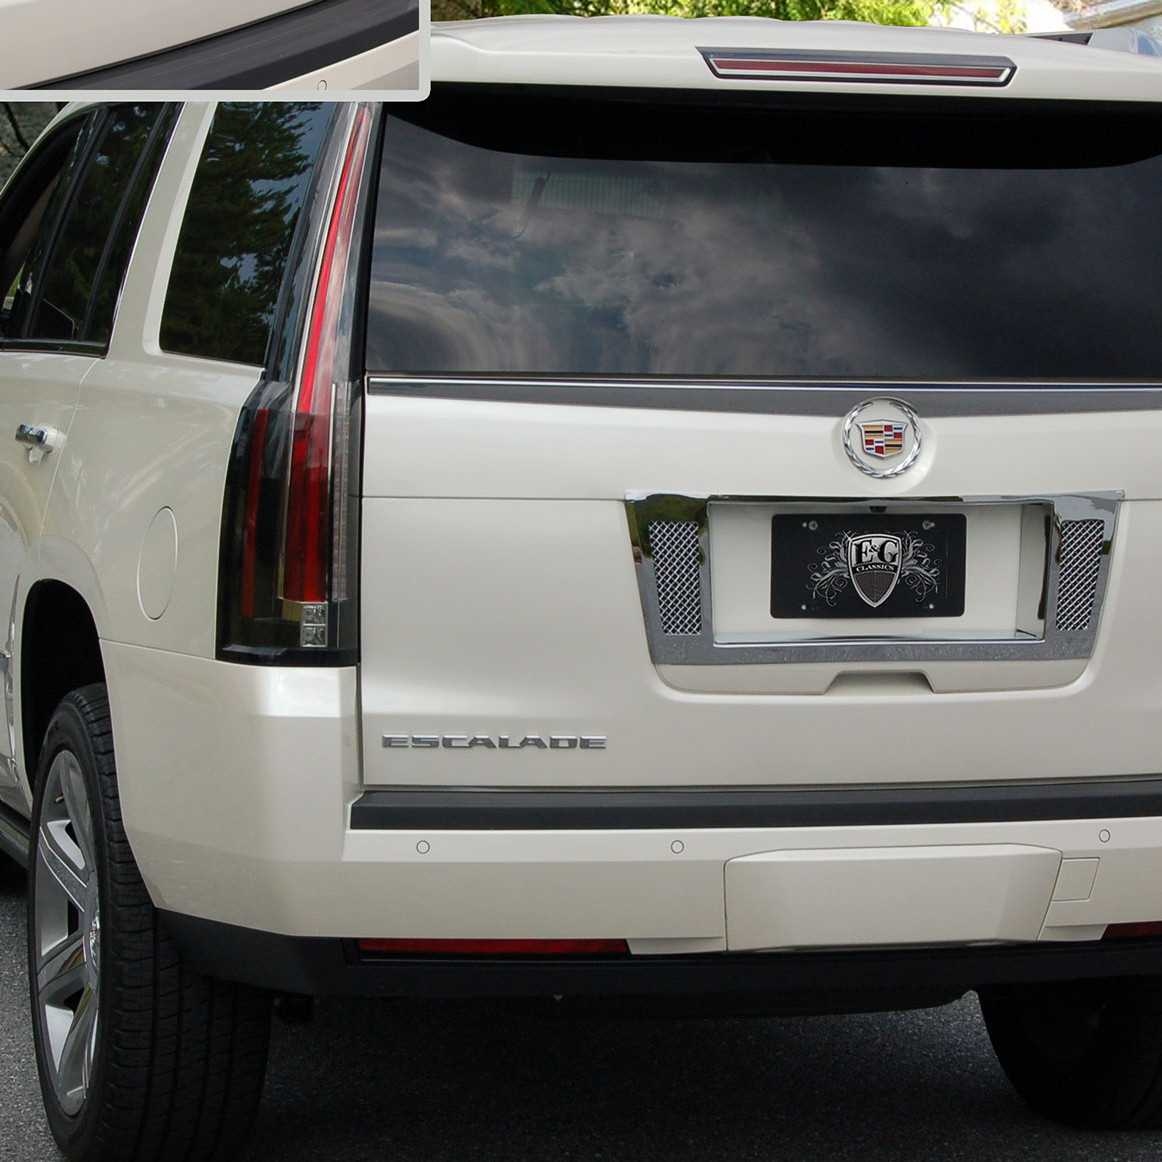 2002 Cadillac Escalade Grille Kits Accessories